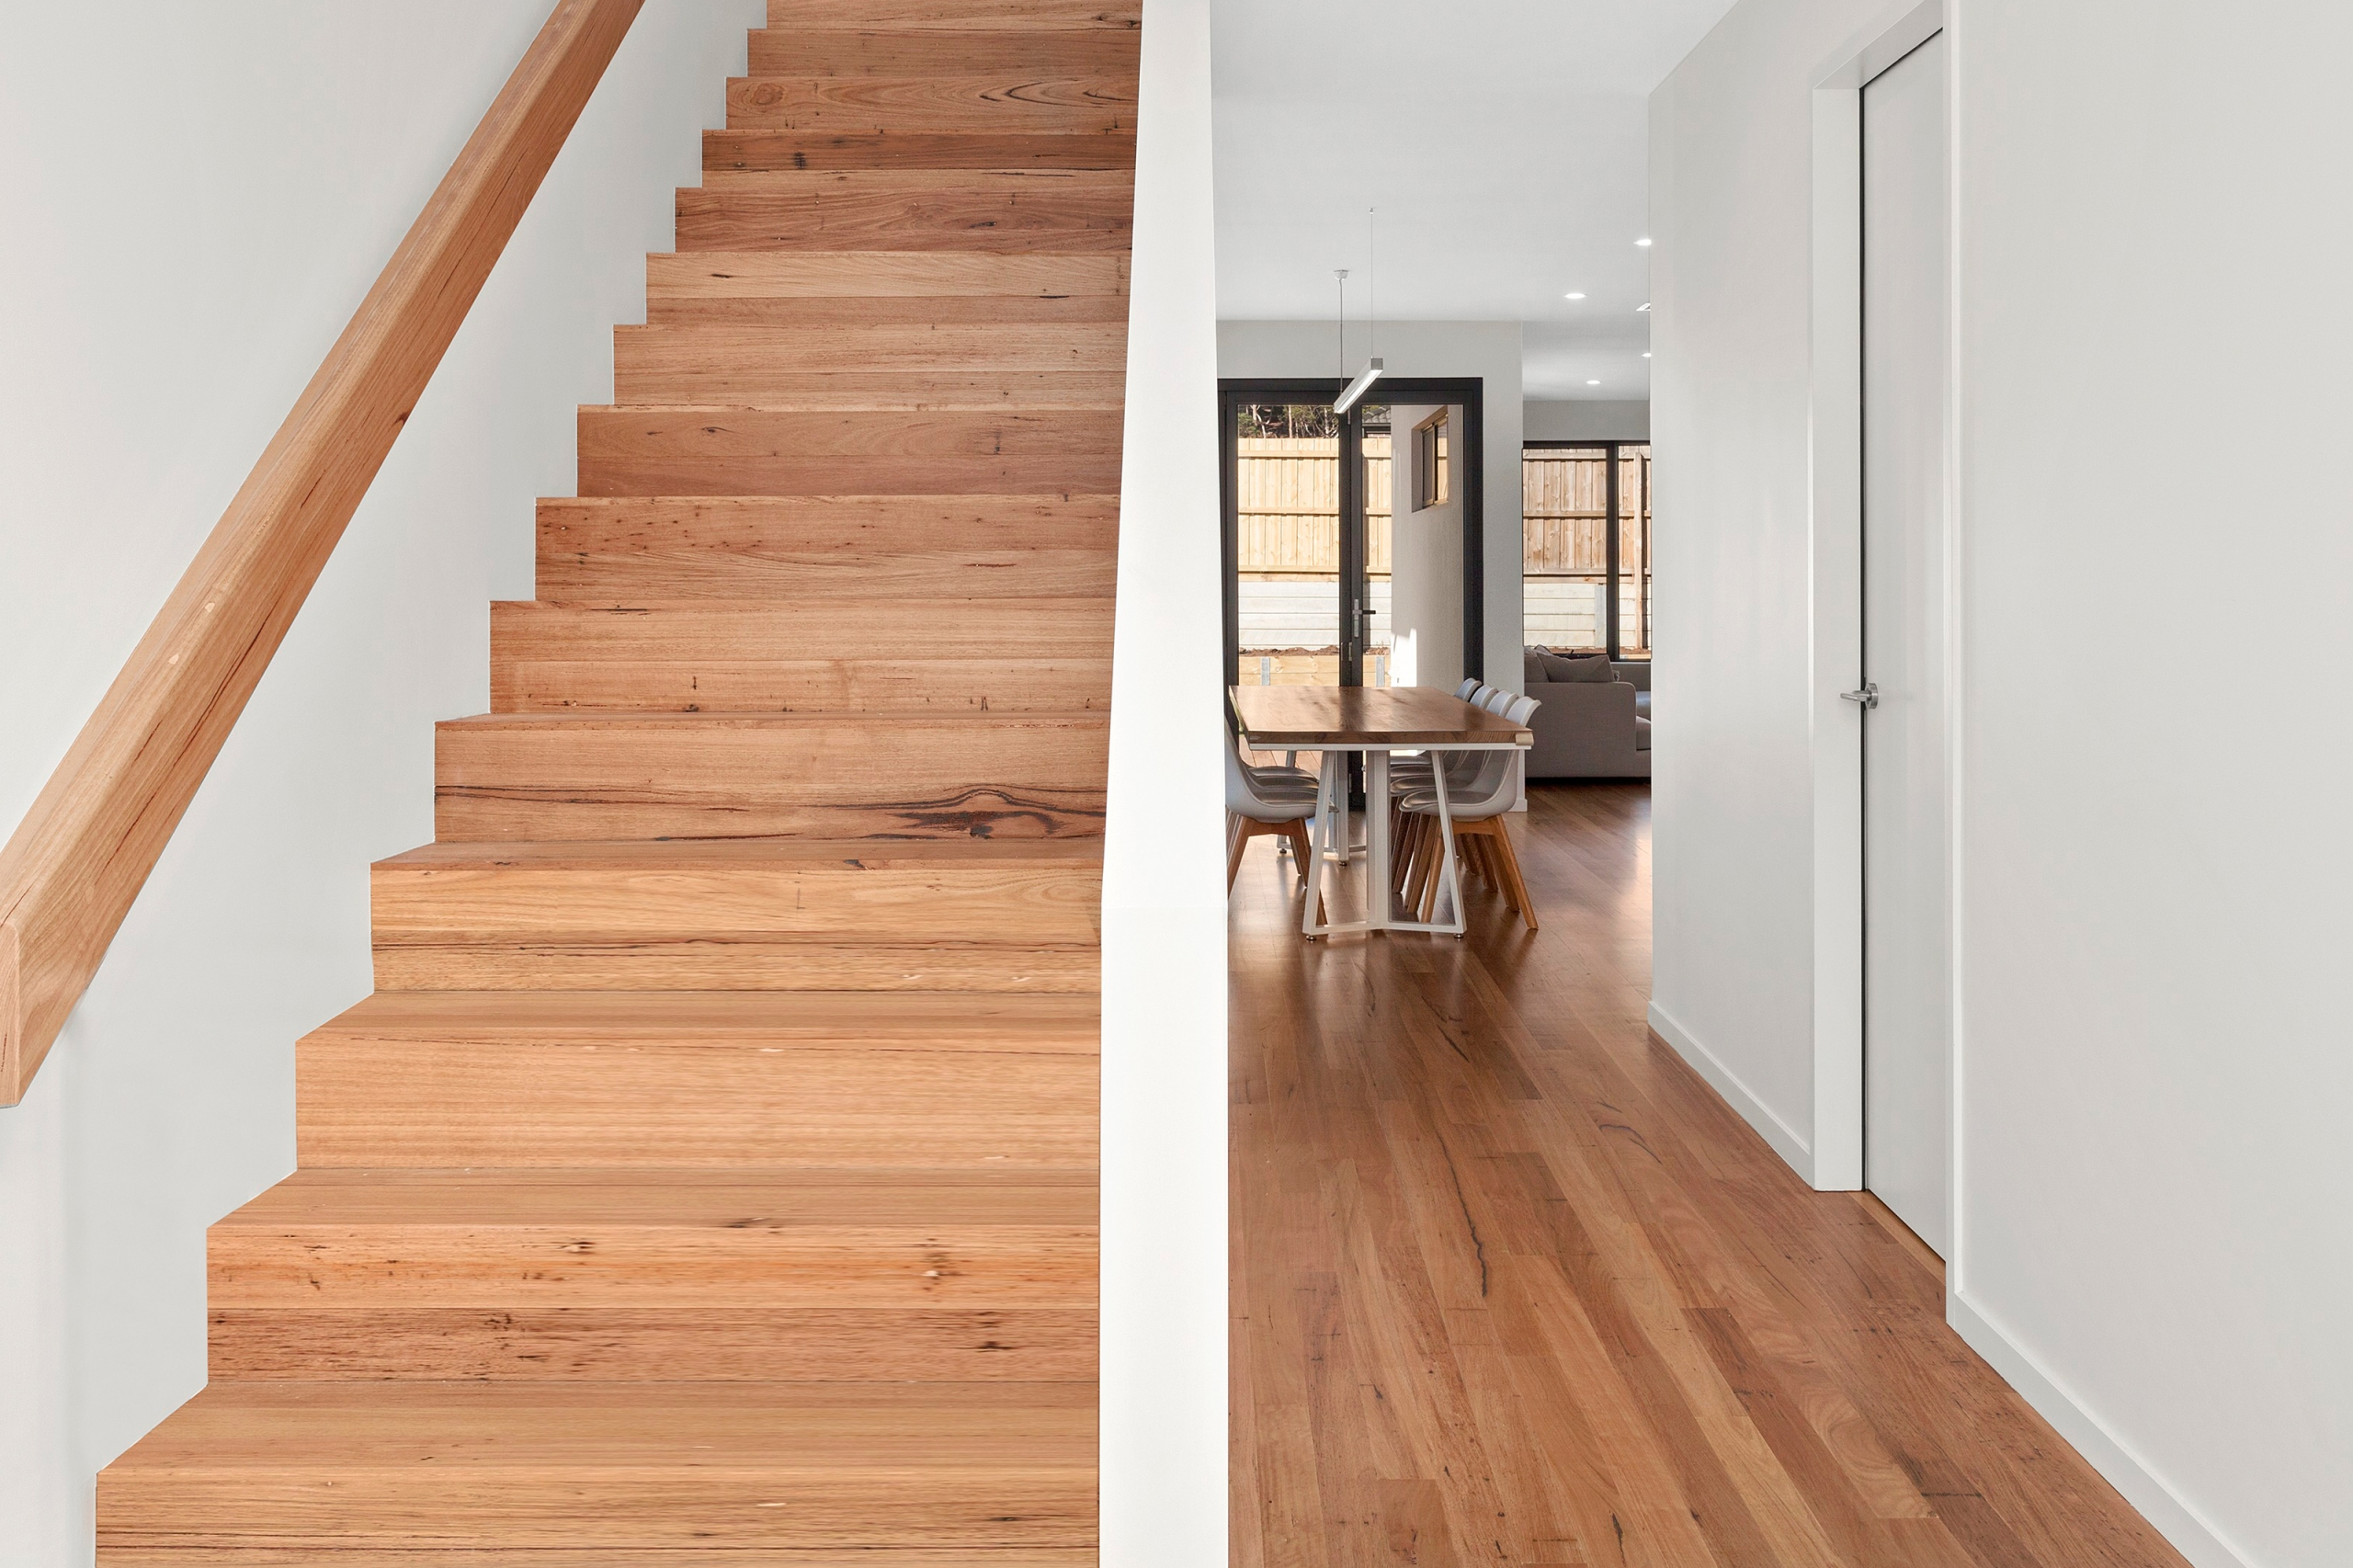 Hardwood floor in a home with flight of stairs